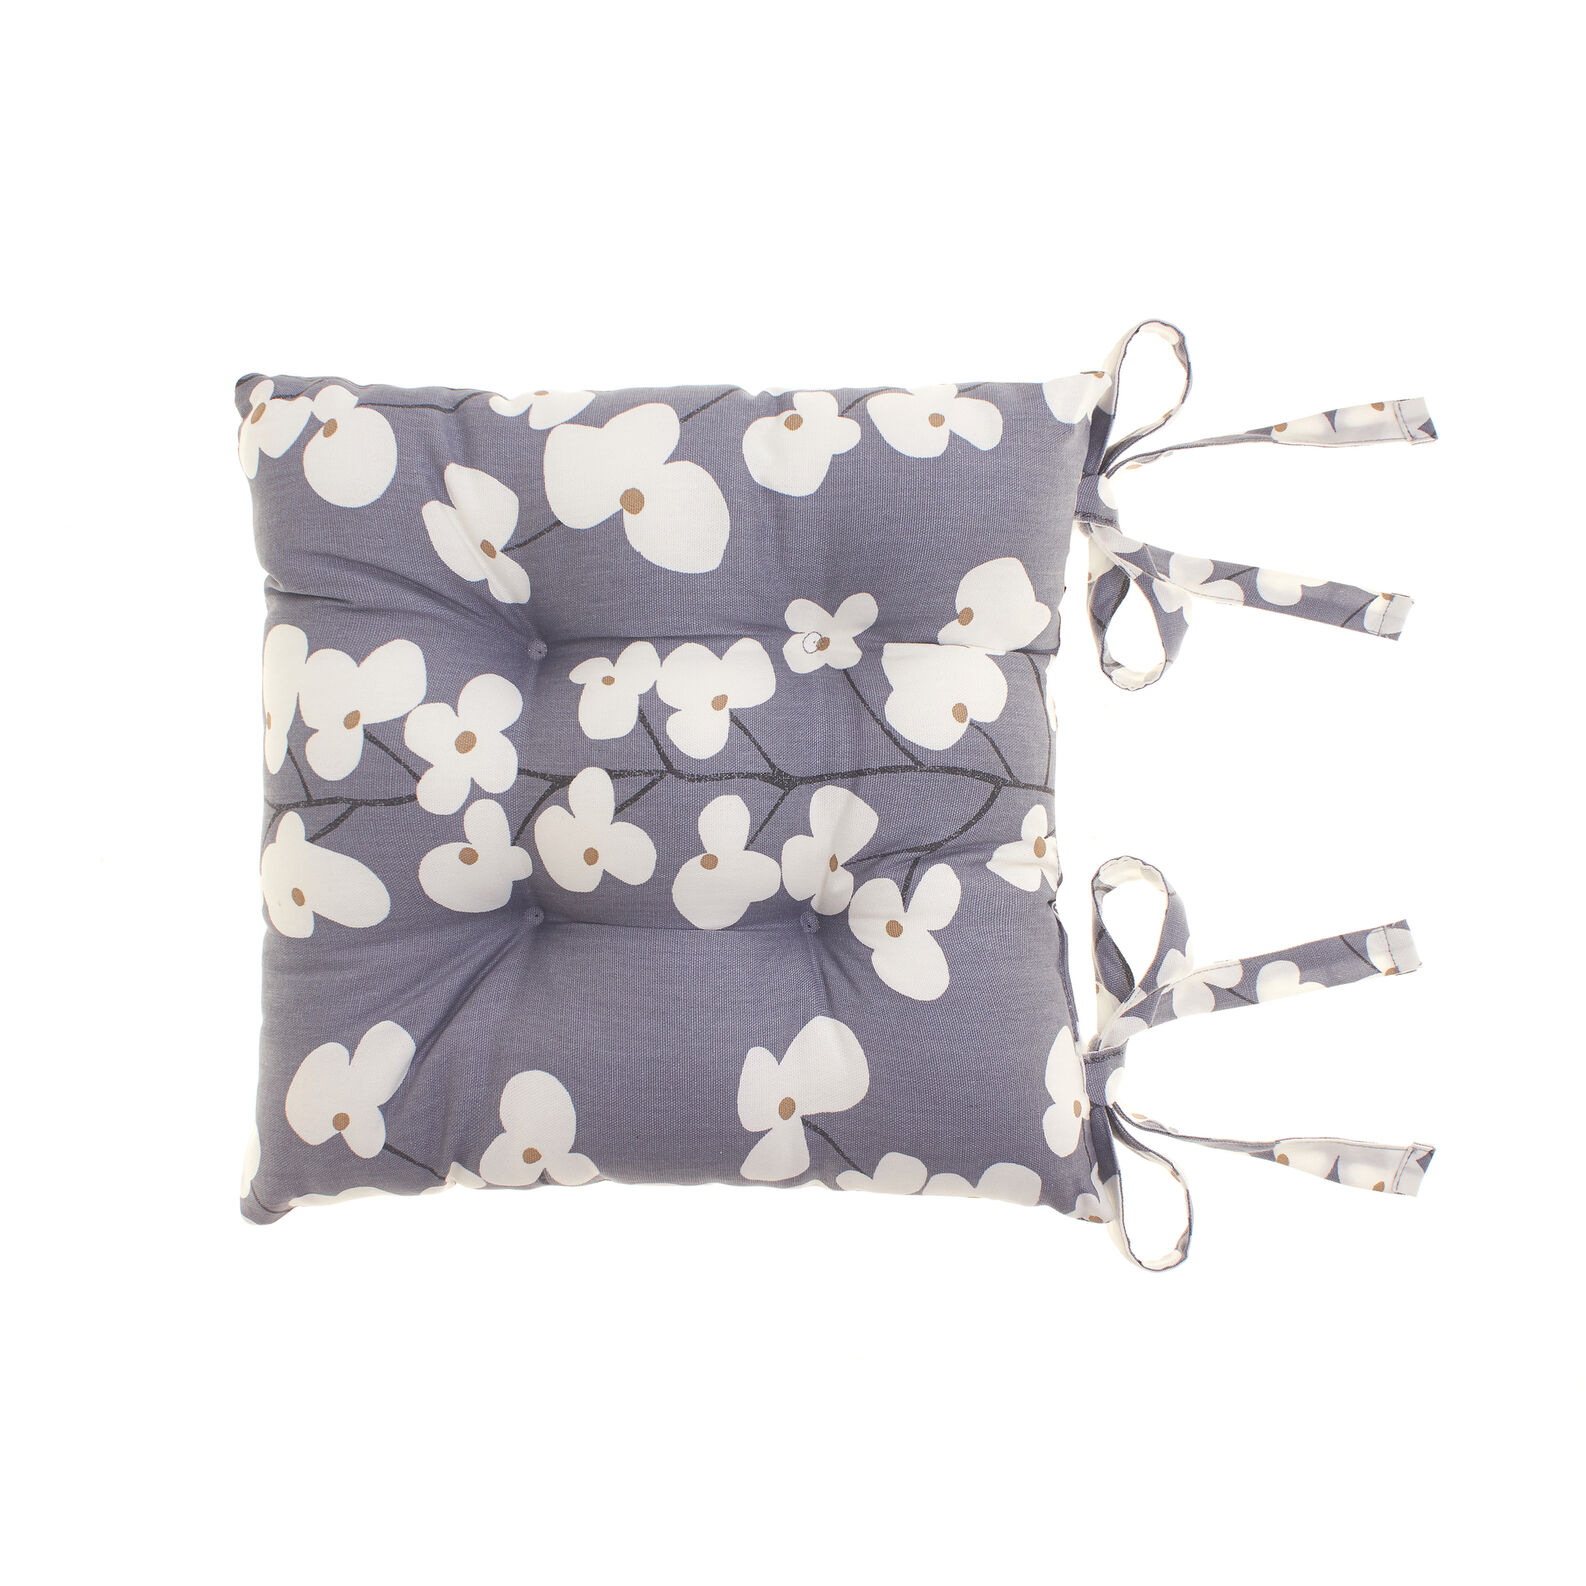 100% cotton floral seat pad